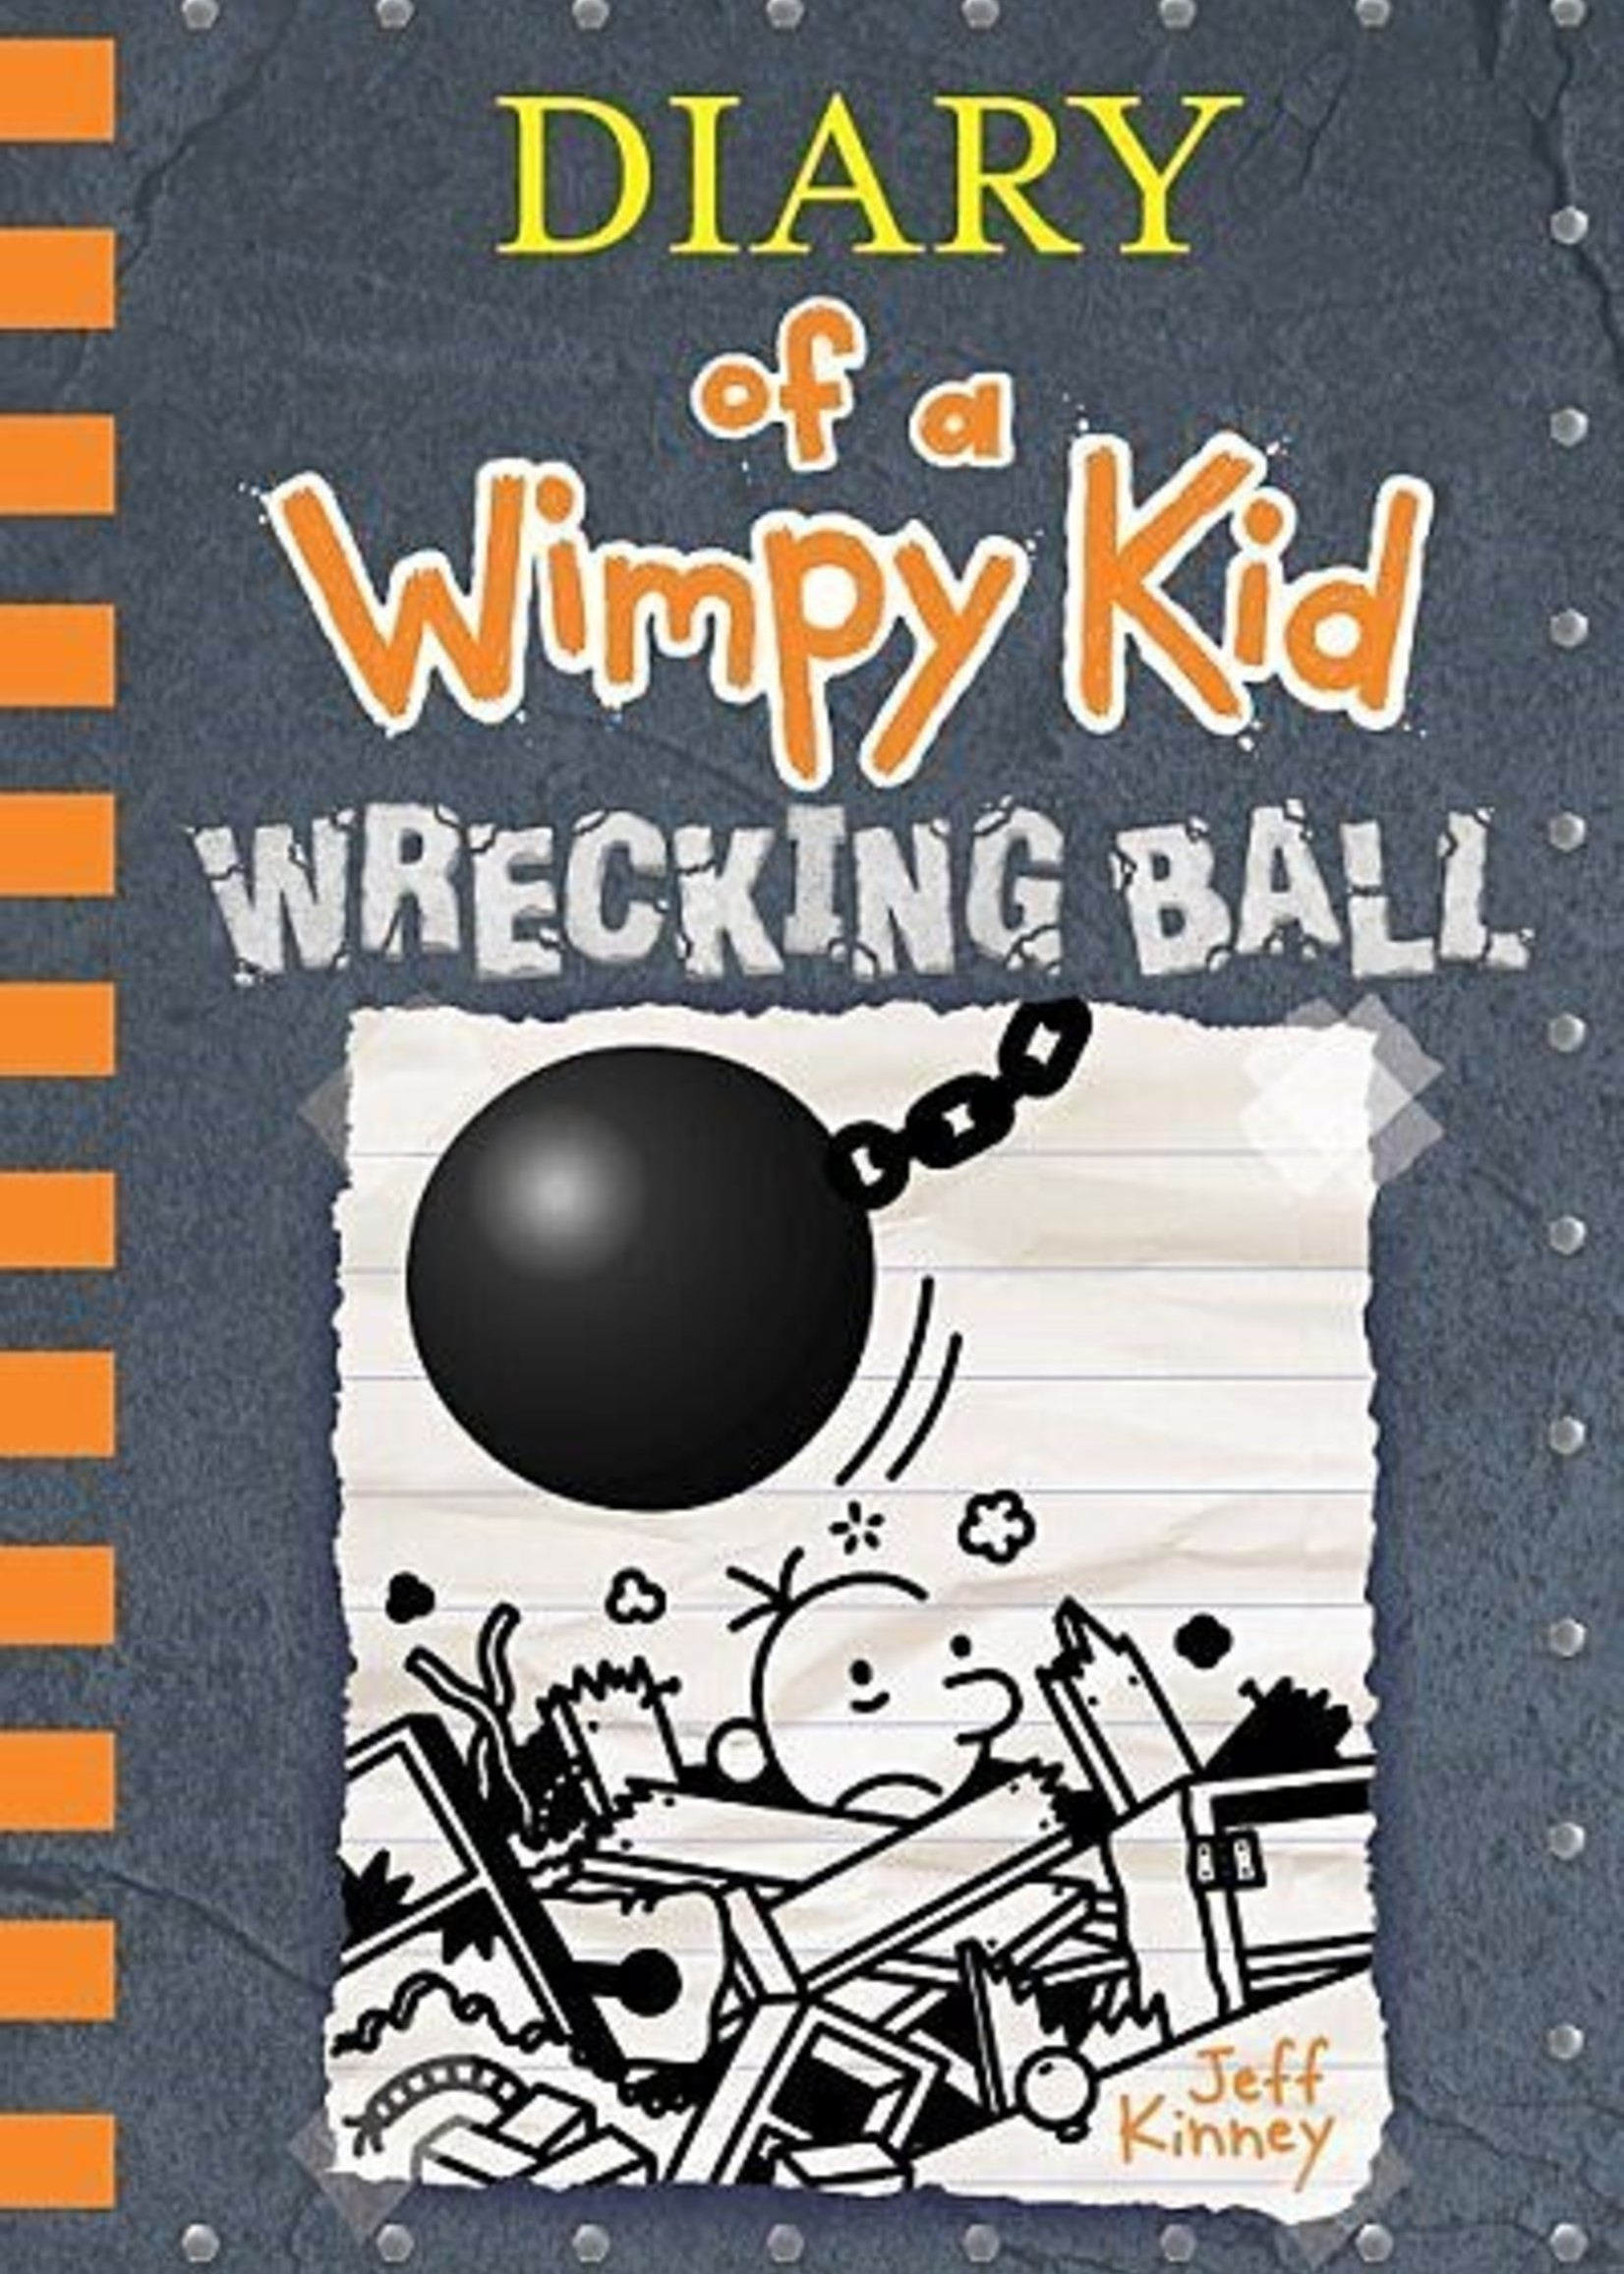 Diary of a Wimpy Kid Illustrated Novel #14, Wrecking Ball - Hardcover